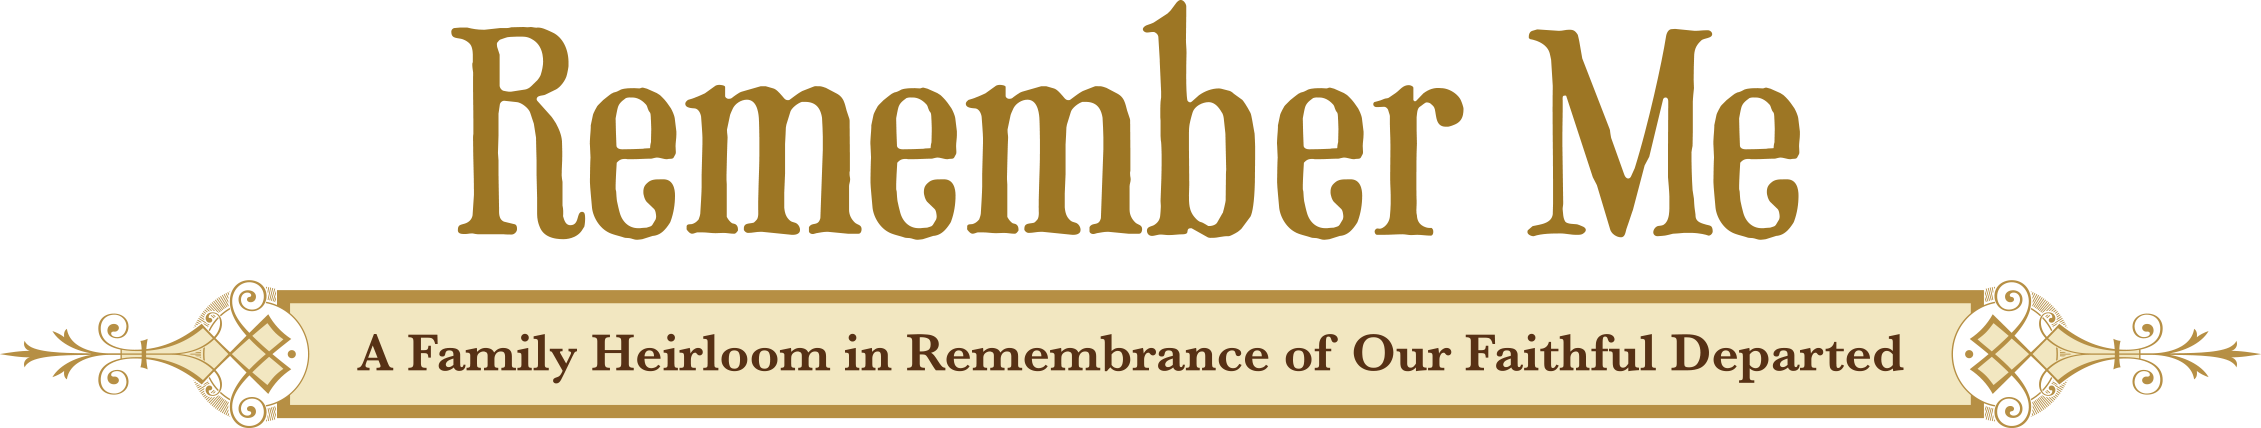 The Remembrance Book